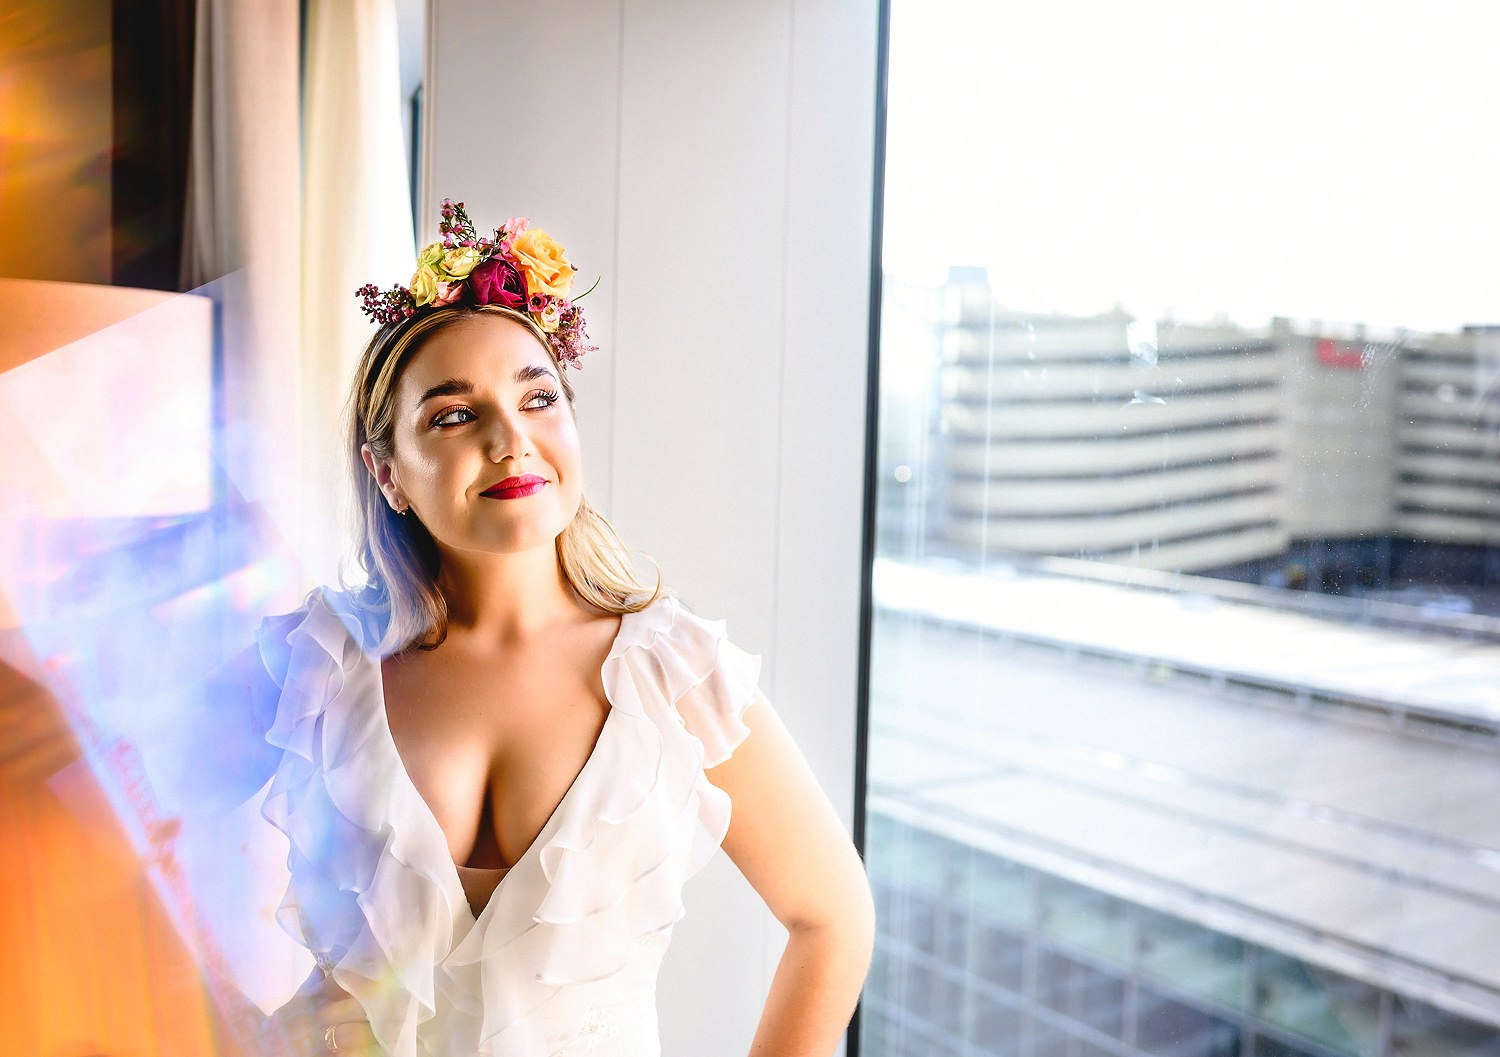 Bride posing by the window at The Stratford Hotel in London